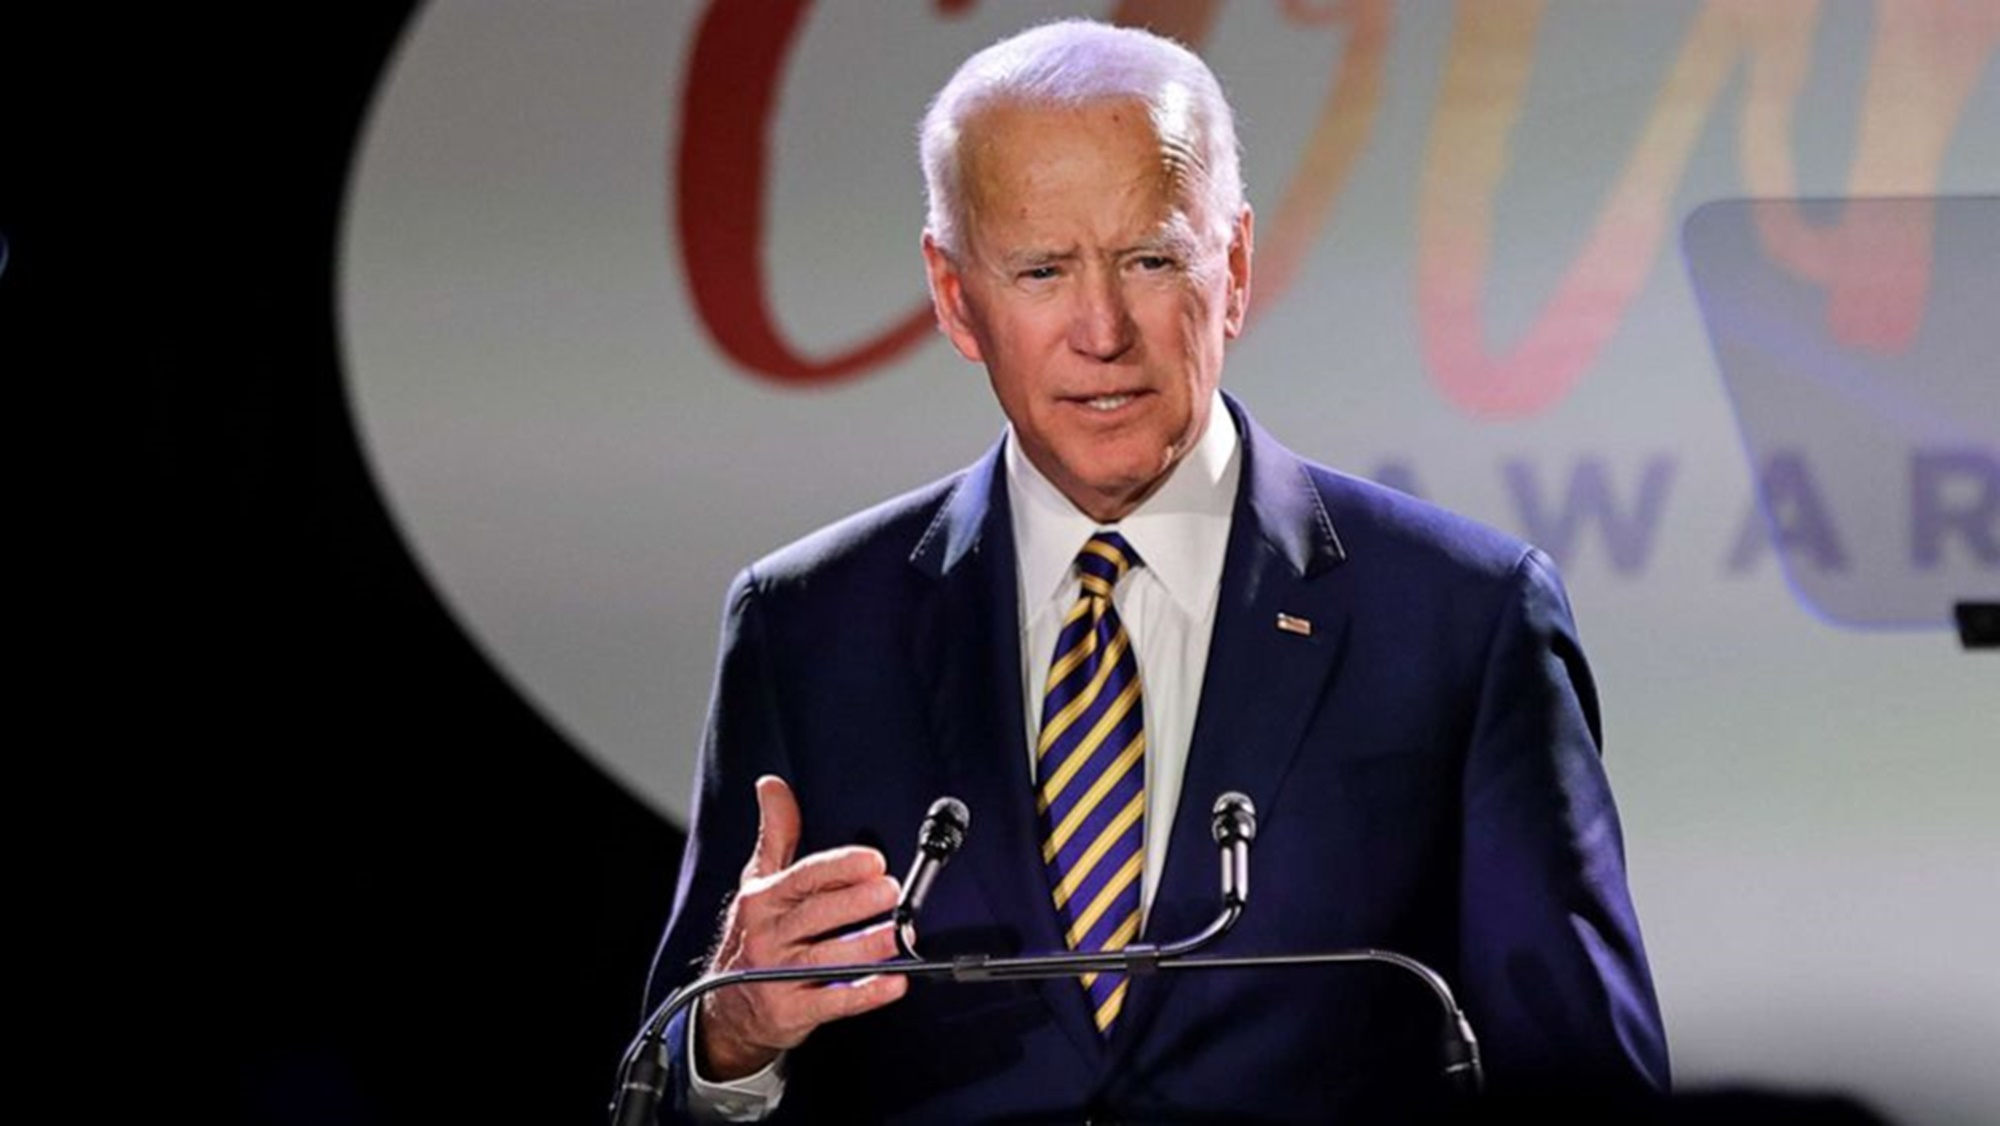 joe-biden-is-still-apologizing-and-talking-about-anita-hill-should-he-not-focus-more-on-the-future-of-this-country